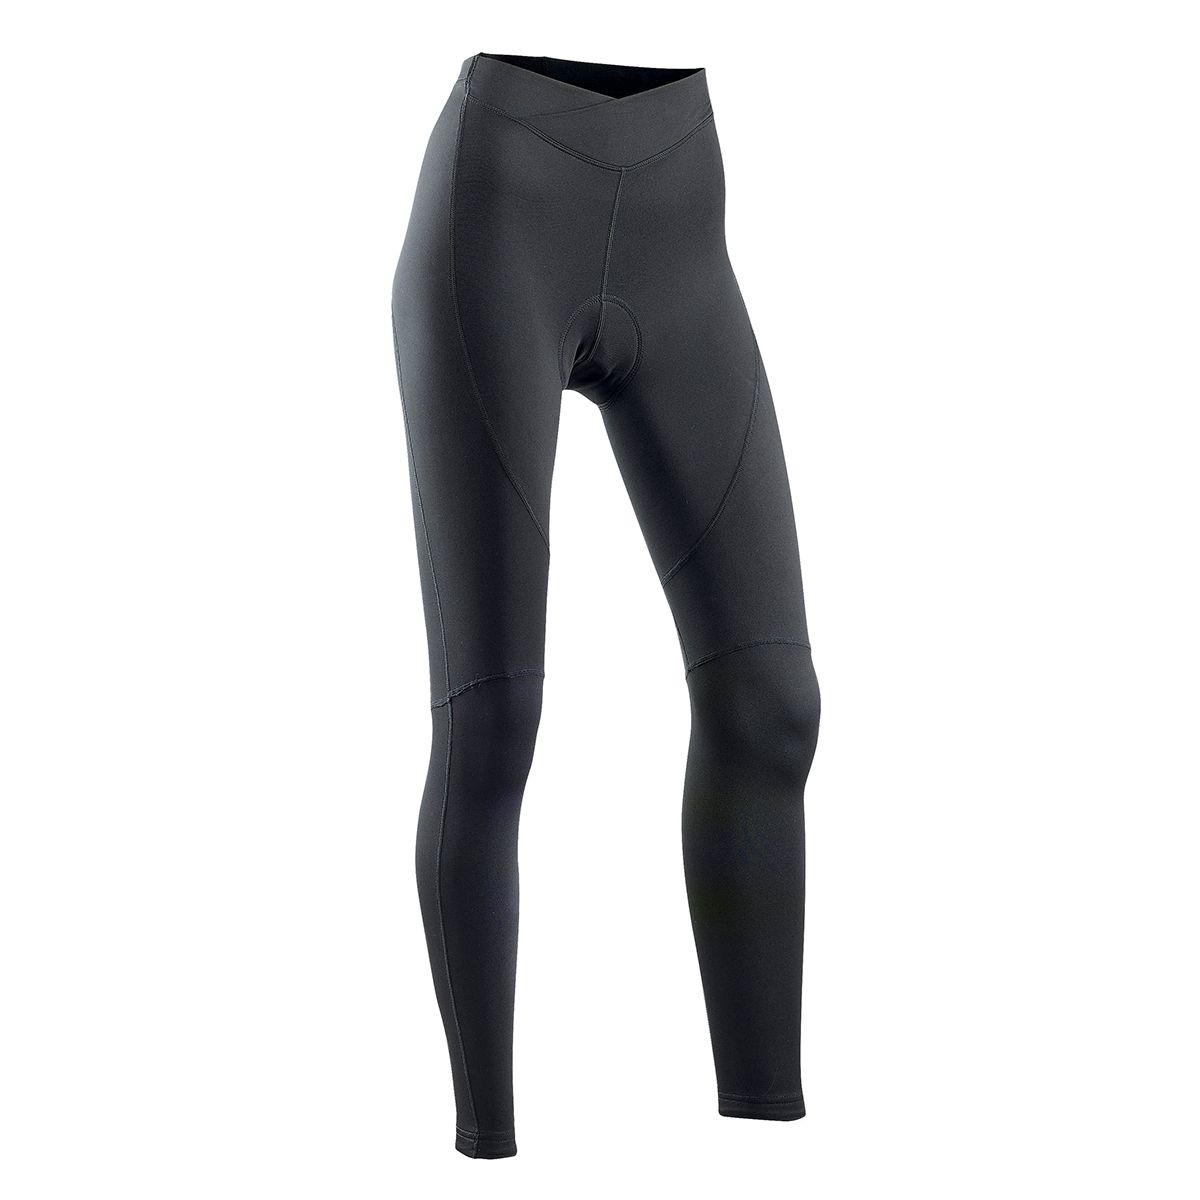 CRYSTAL 2 TIGHT MID SEASON Damen Thermo Radhose